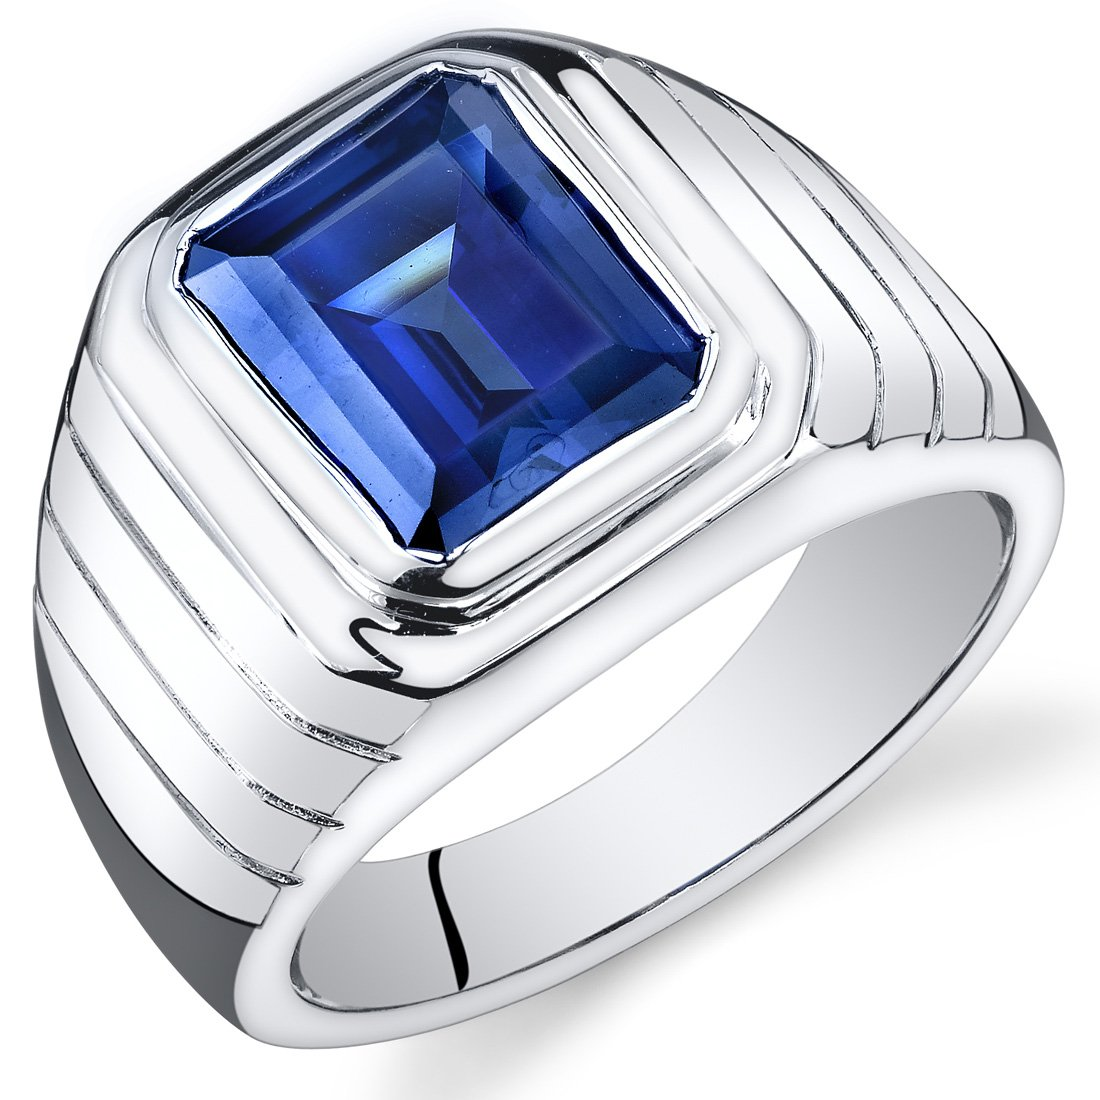 Mens 6.50 Carats Created Sapphire Ring Sterling Silver Rhodium Nickel Finish Octagon Cut Sizes 8 to 13